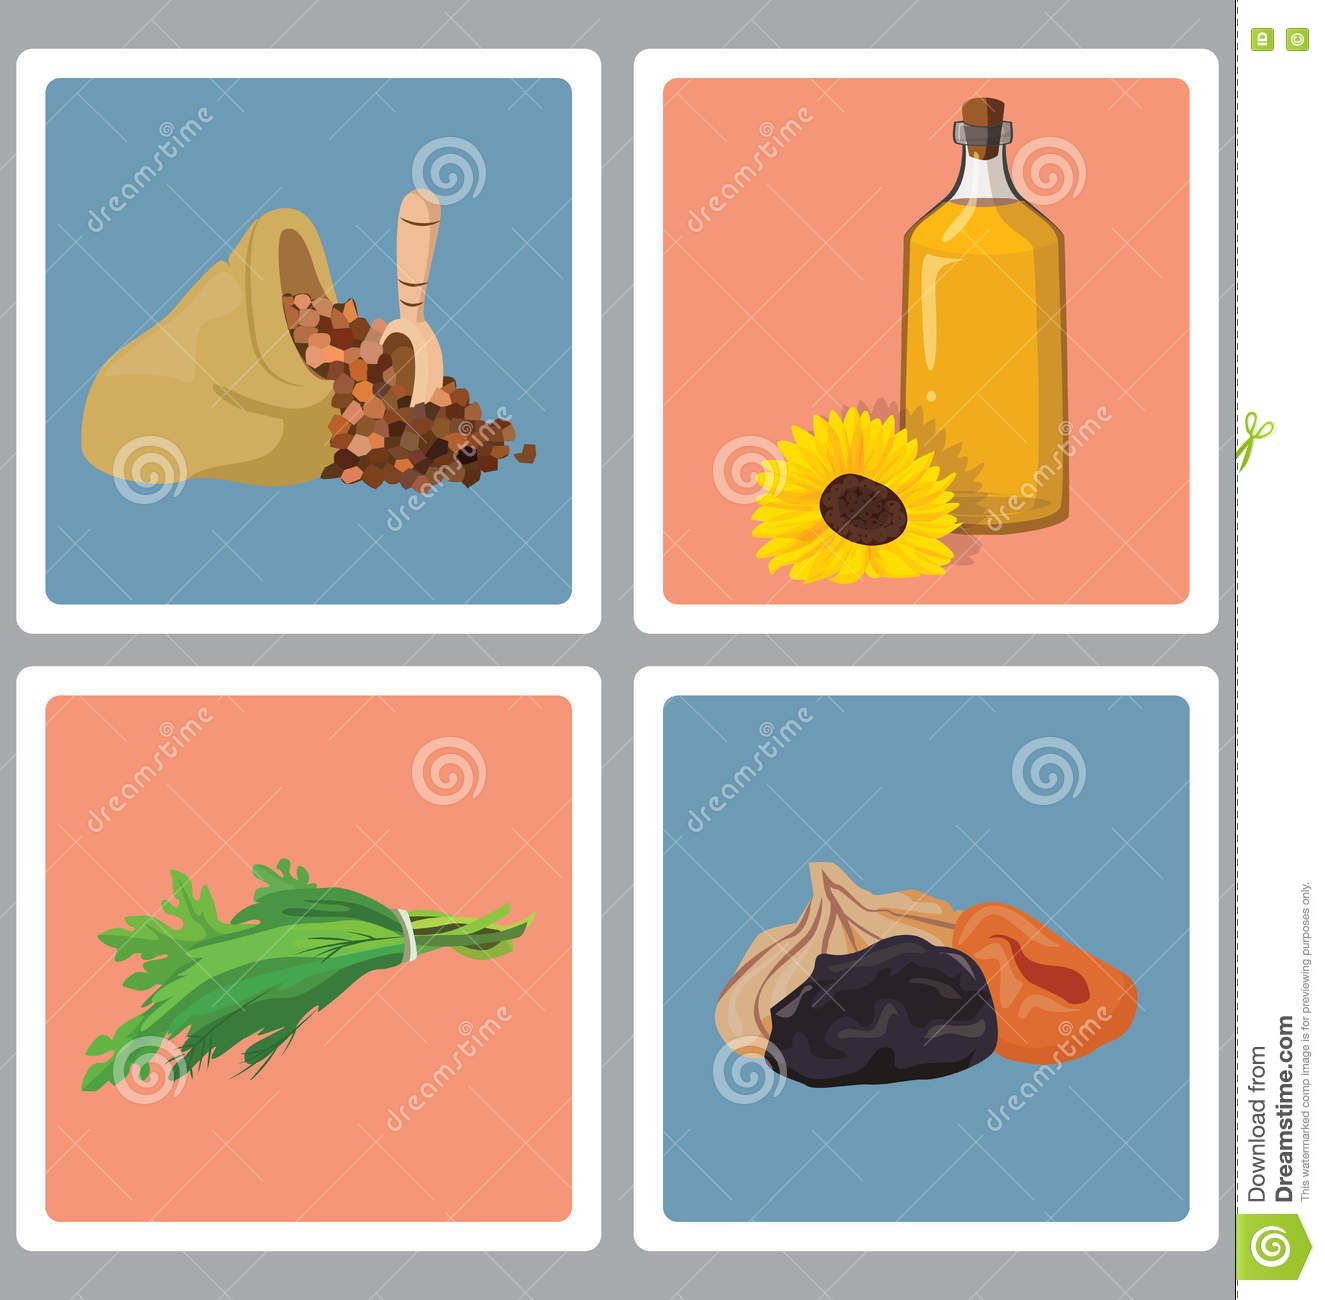 Grains, herbs, oil and dried fruits - useful products